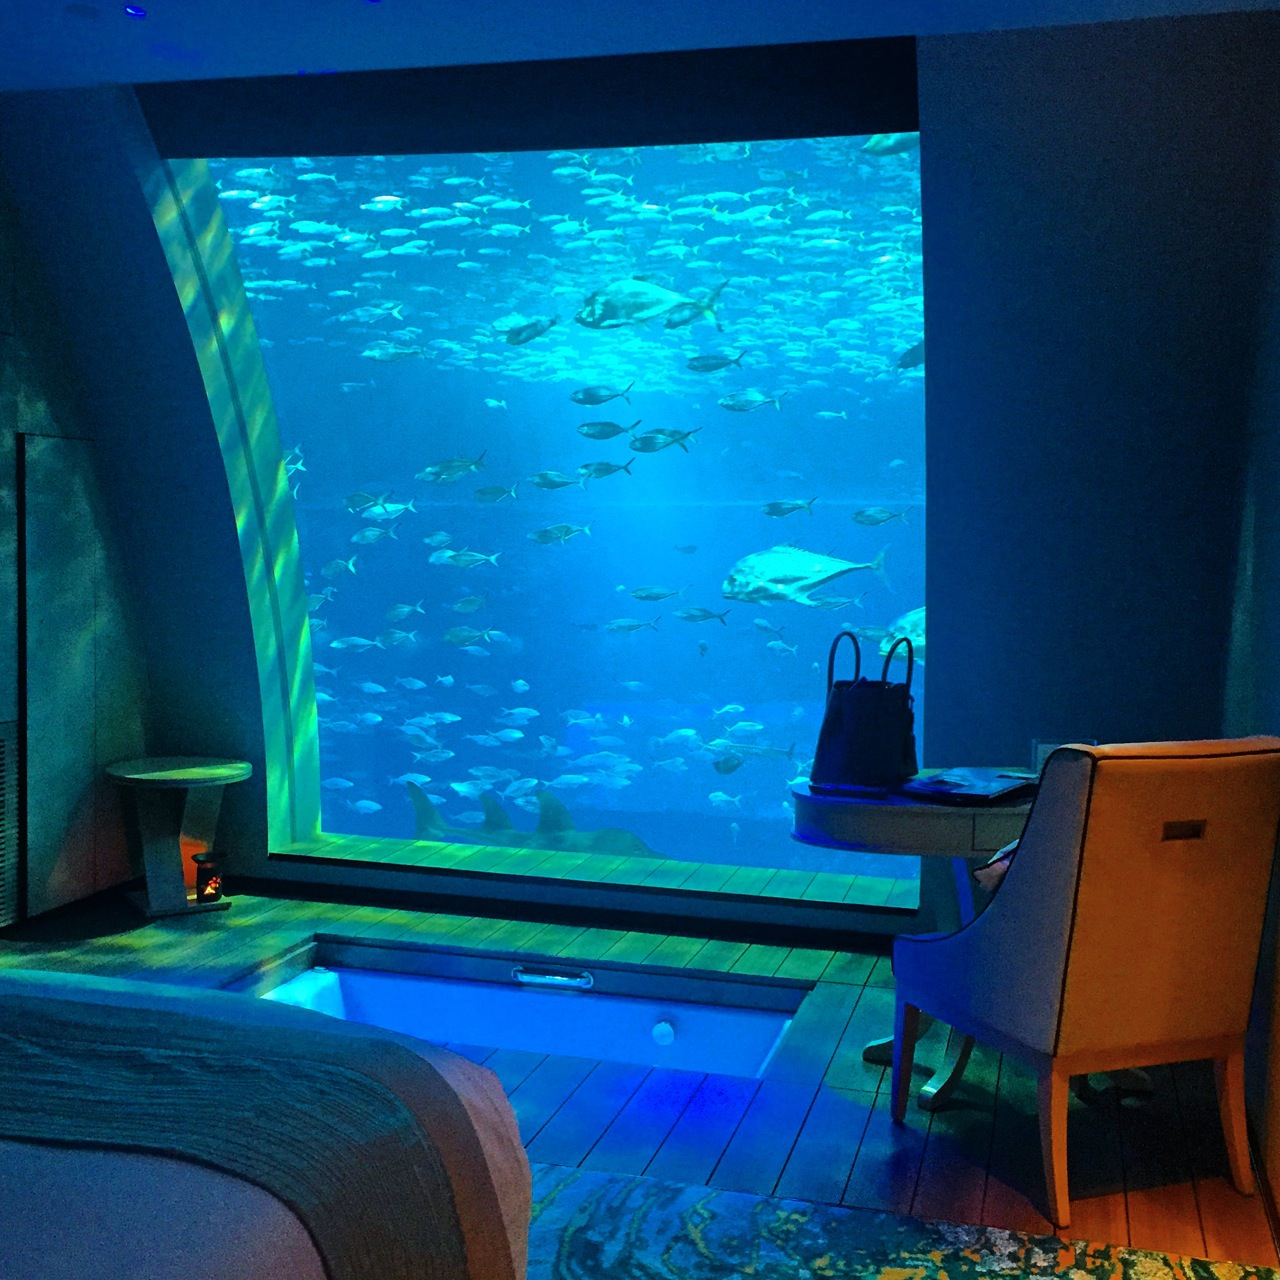 Aquarium hotel aquarium hotel room under water maldives for Fish hotel tank